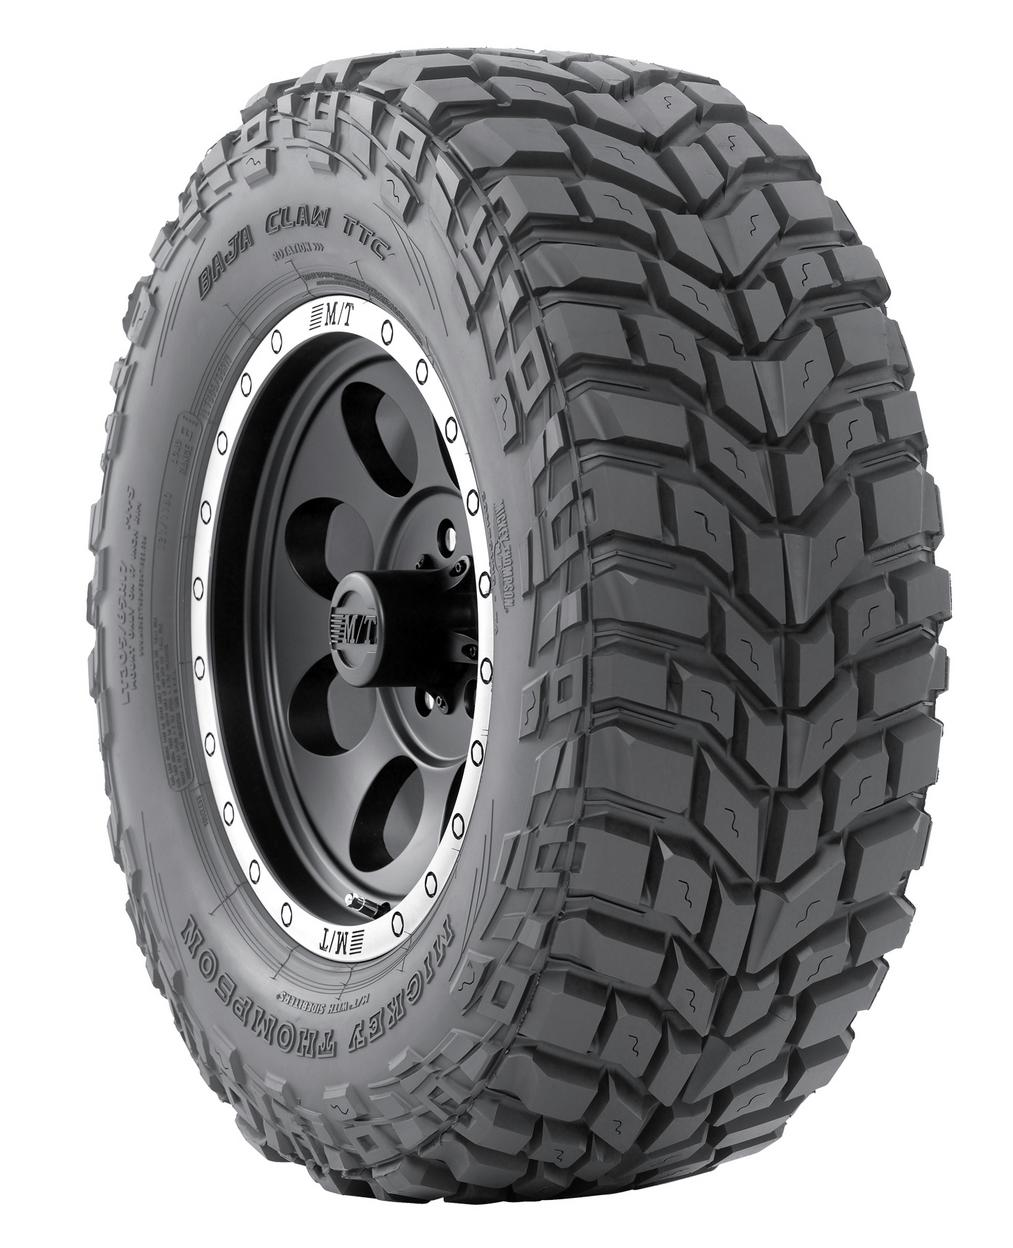 LIGHT TRUCK RADIAL TIRE